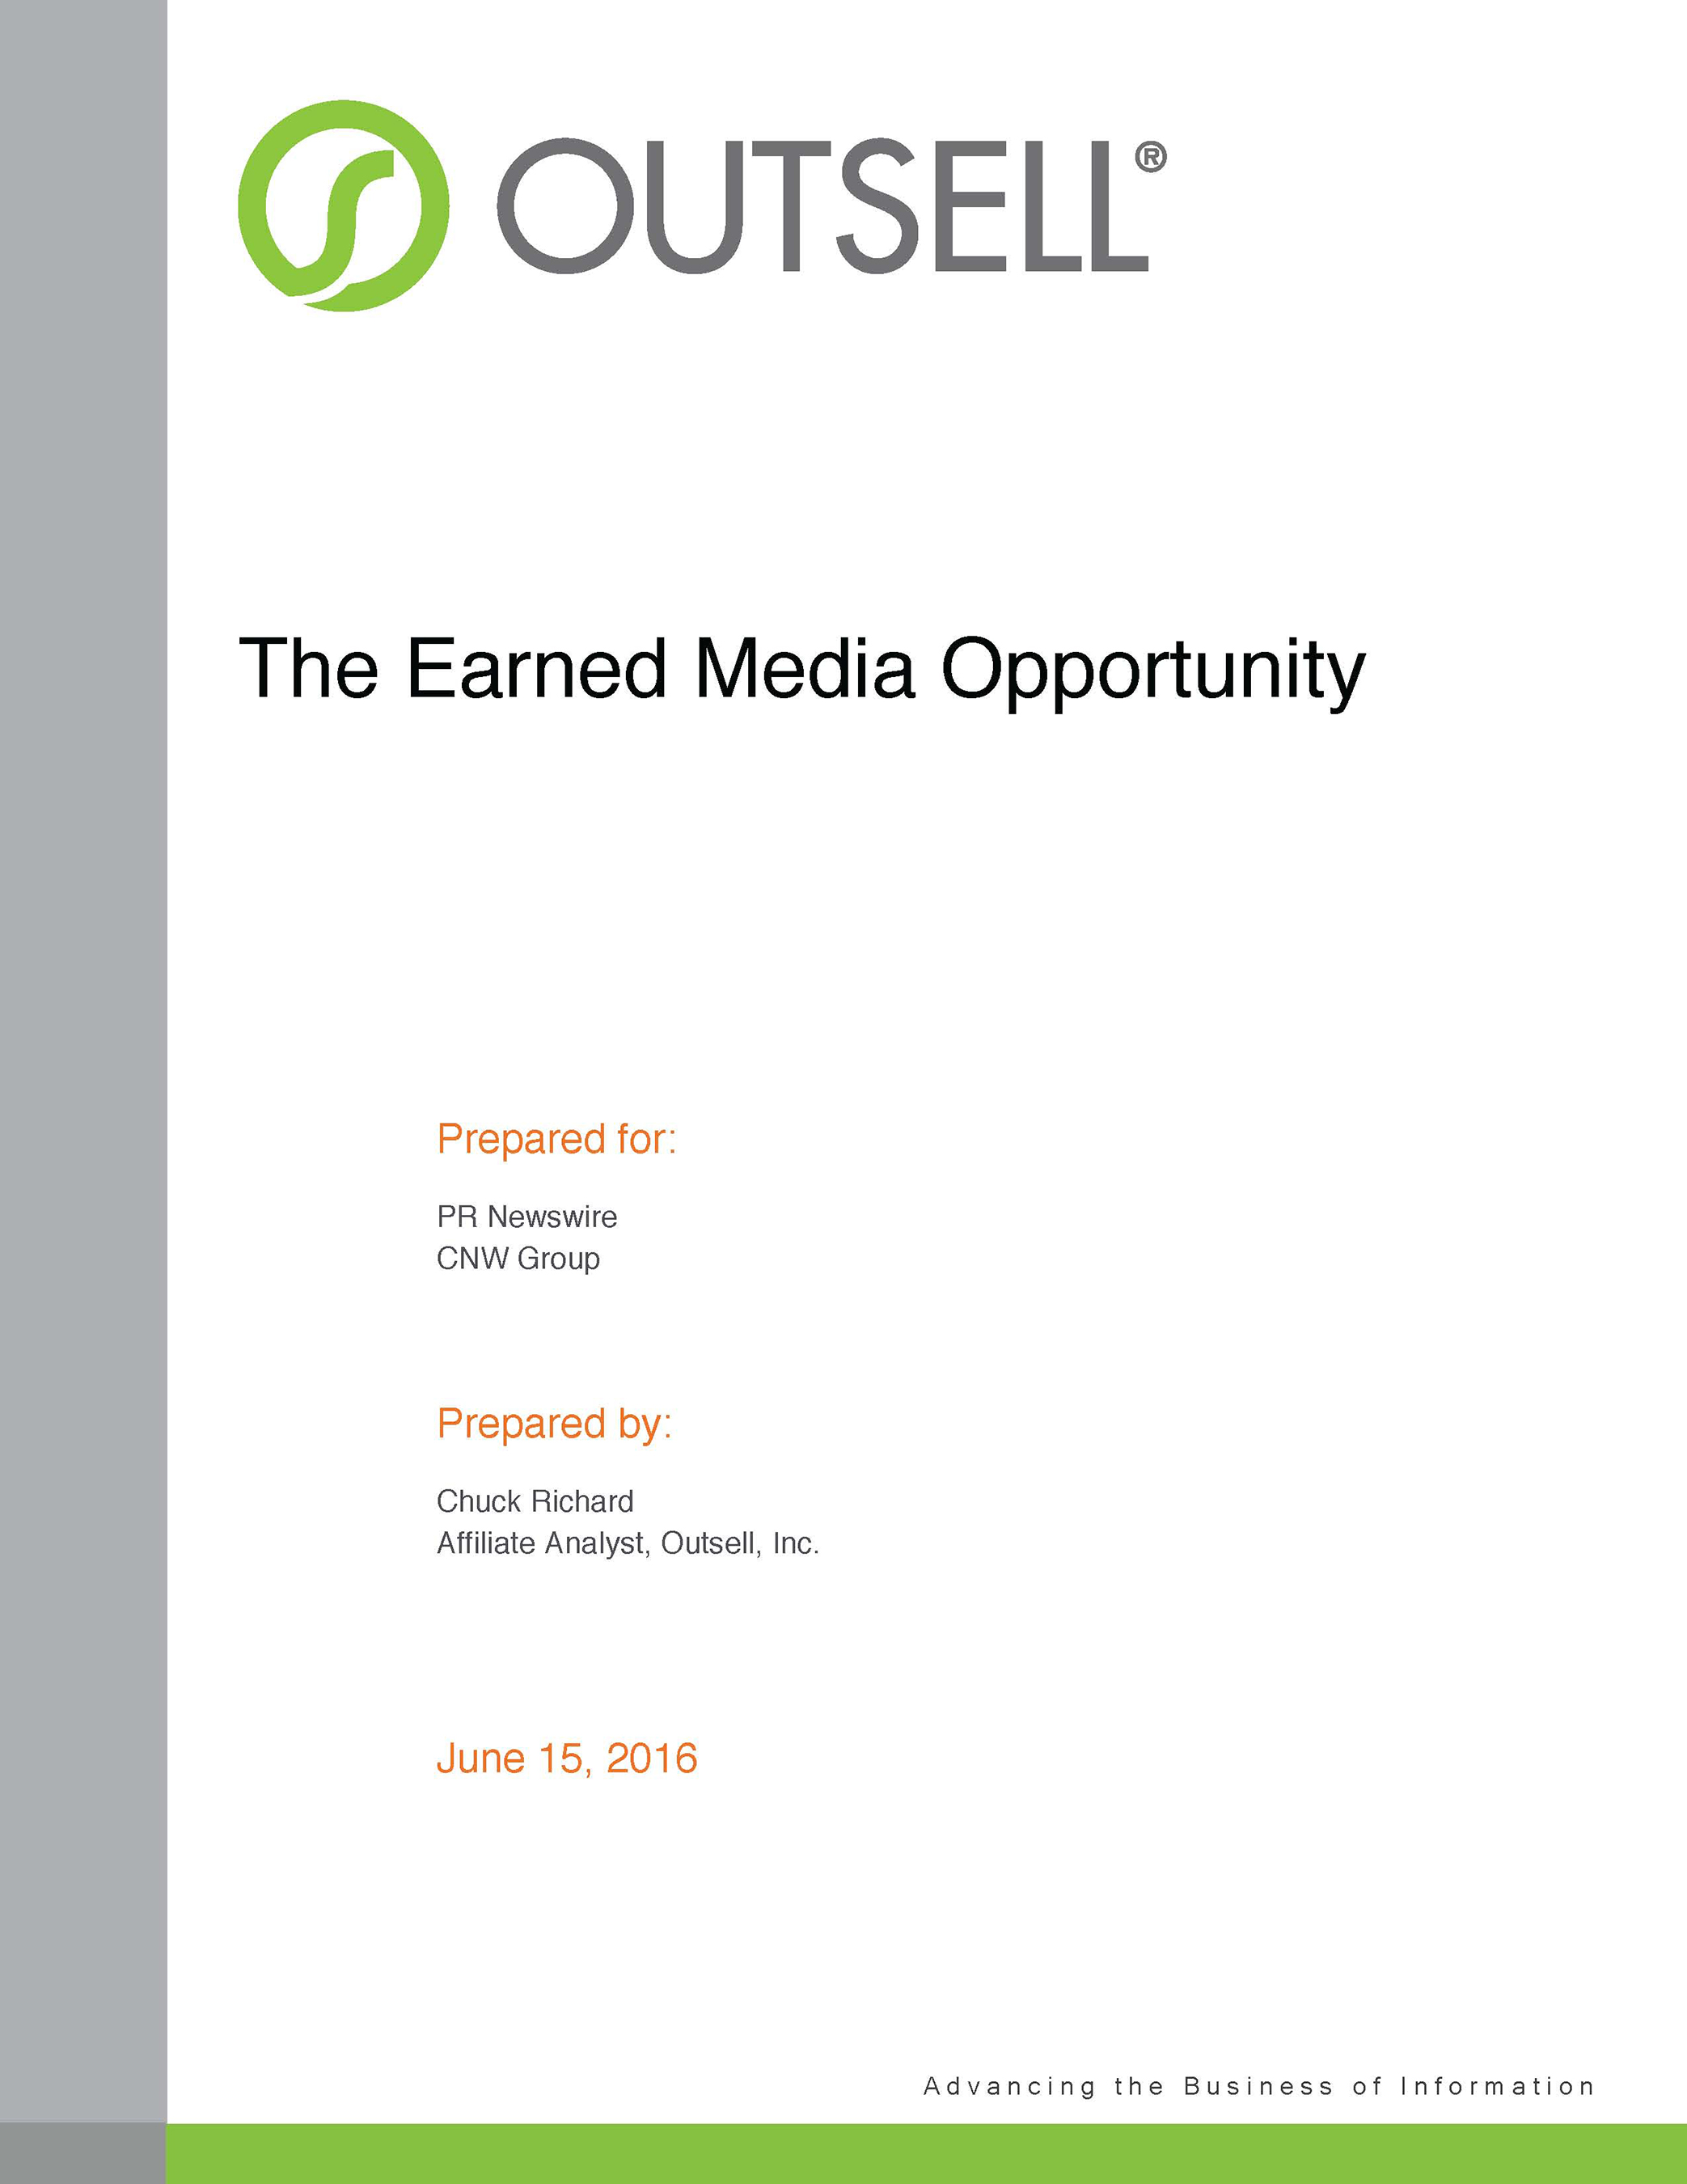 Research from Outsell reveals untapped potential for earned media as part of the marketing mix.